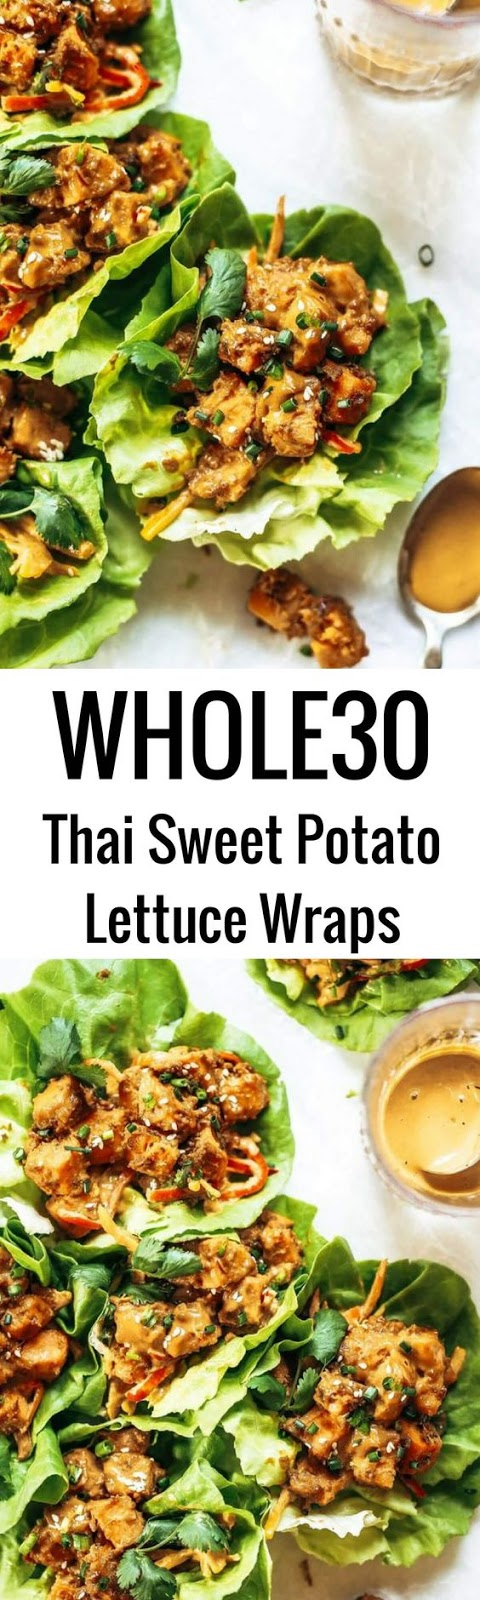 Whole30 Lunch Thaí Sweet Potato Lettuce Wraps